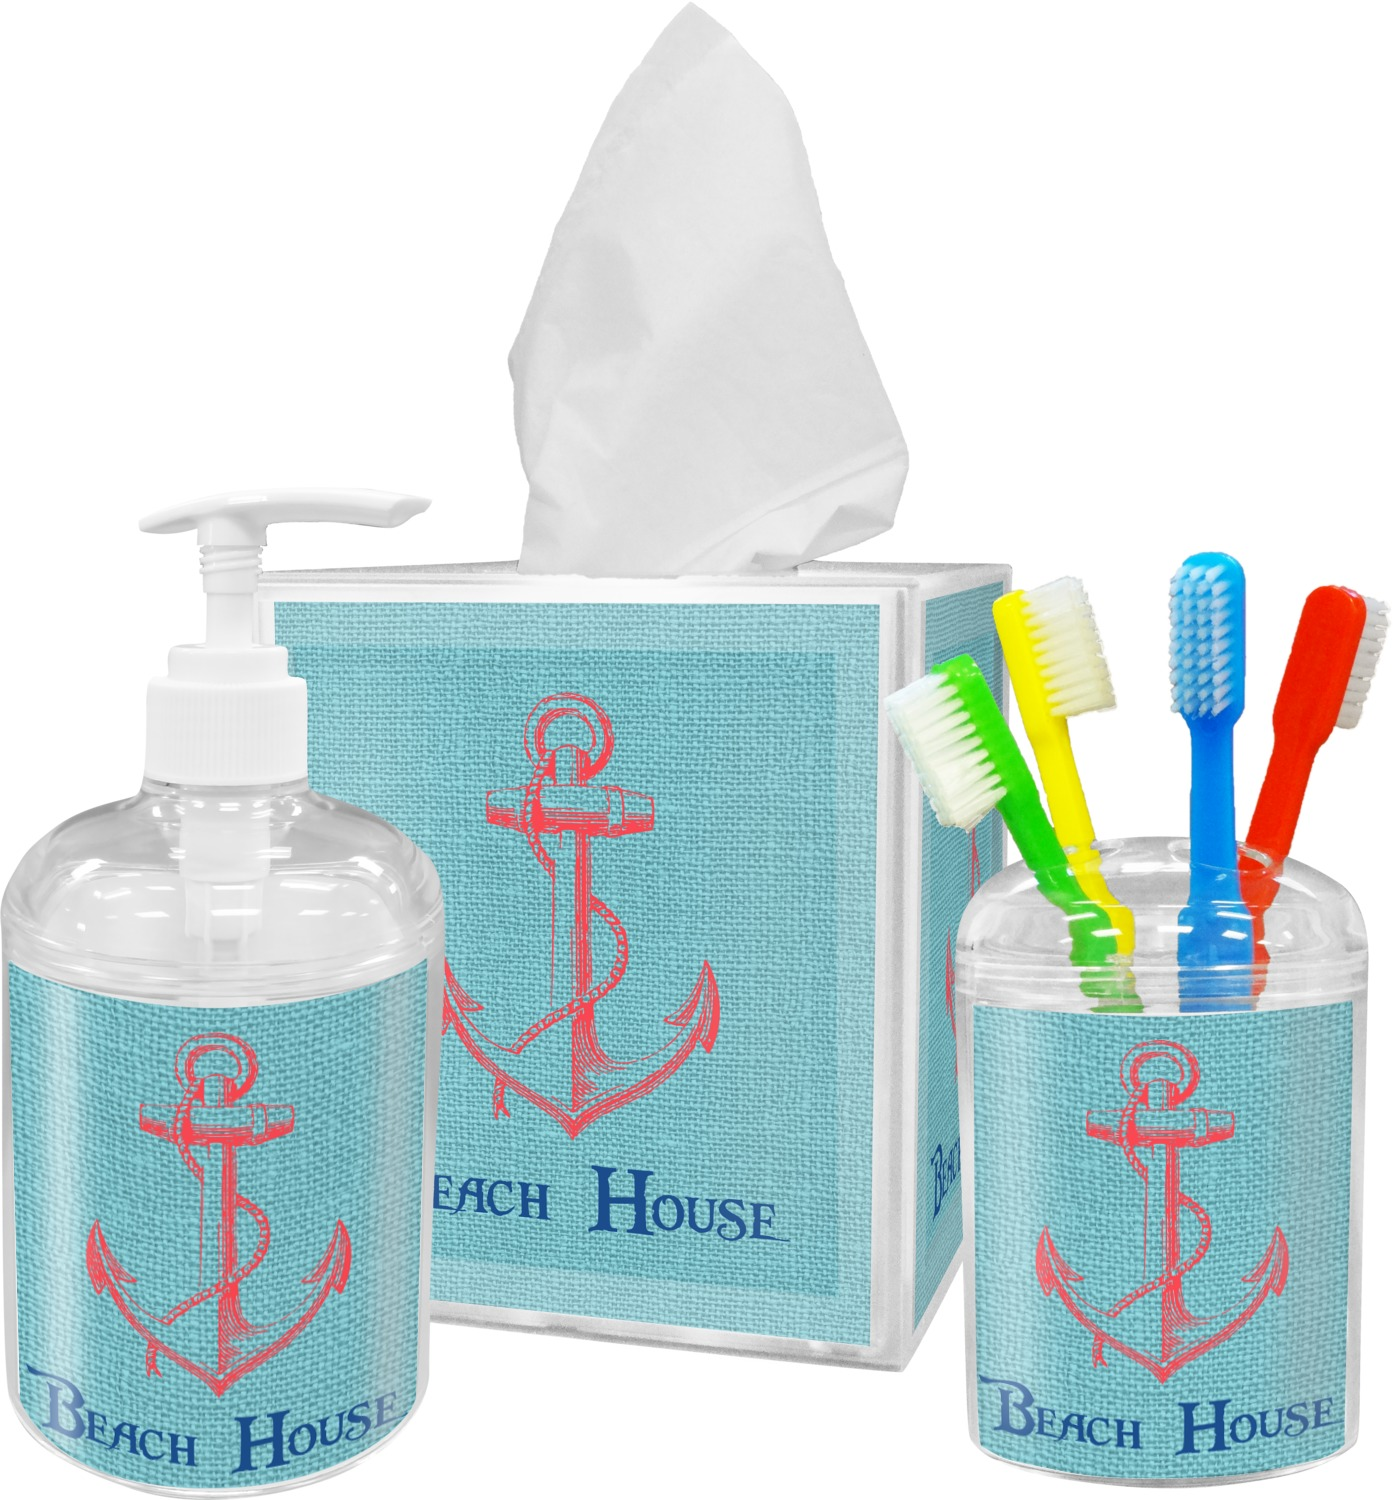 Chic beach house toothbrush holder you customize it for Bathroom design hashtags